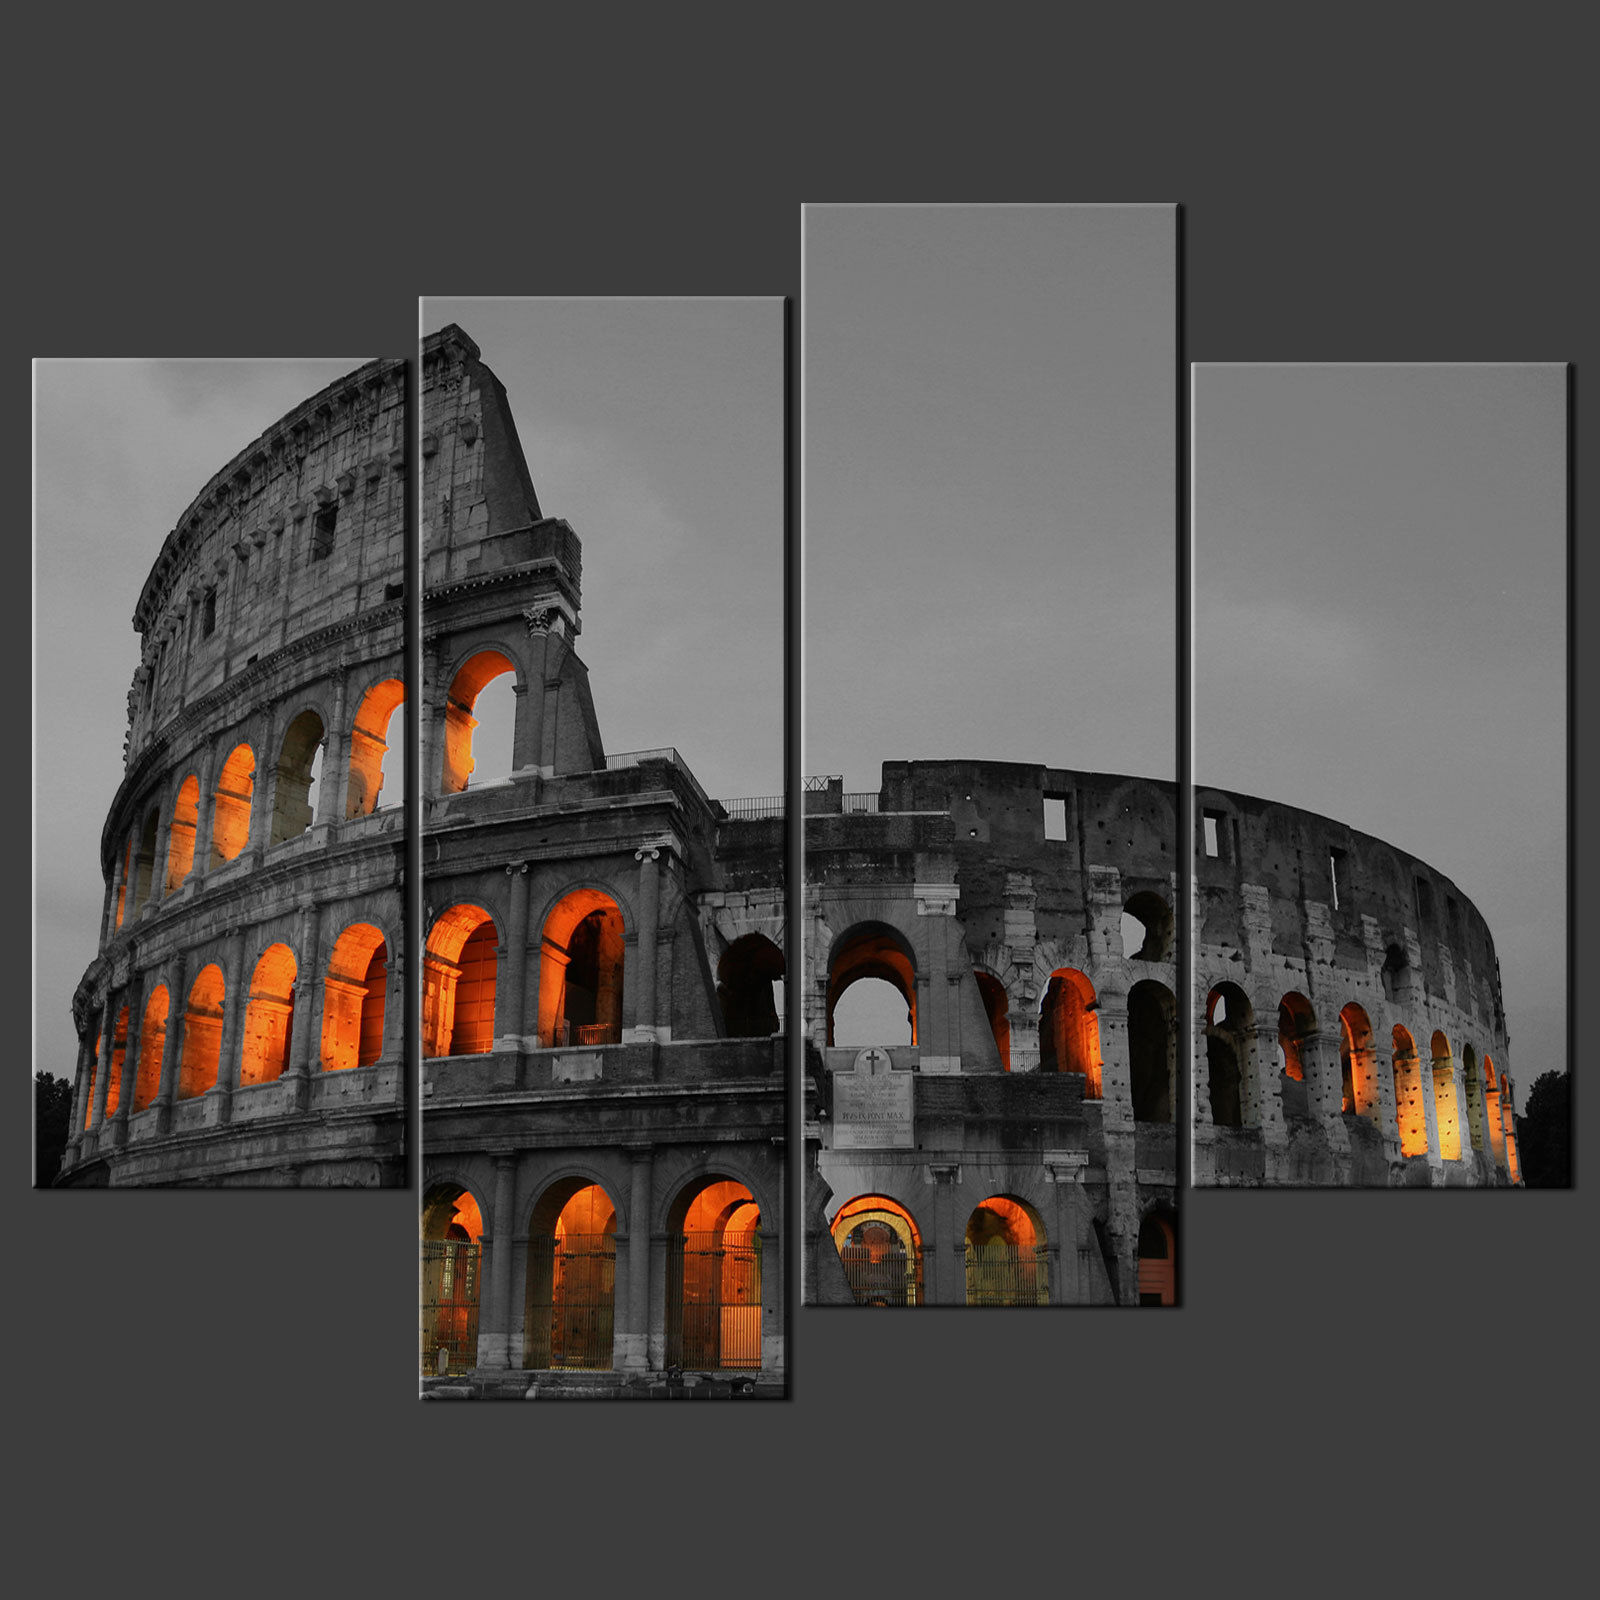 COLOSSEUM CANVAS PRINT PICTURE WALL ART FREE UK POSTAGE VARIETY OF GrößeS